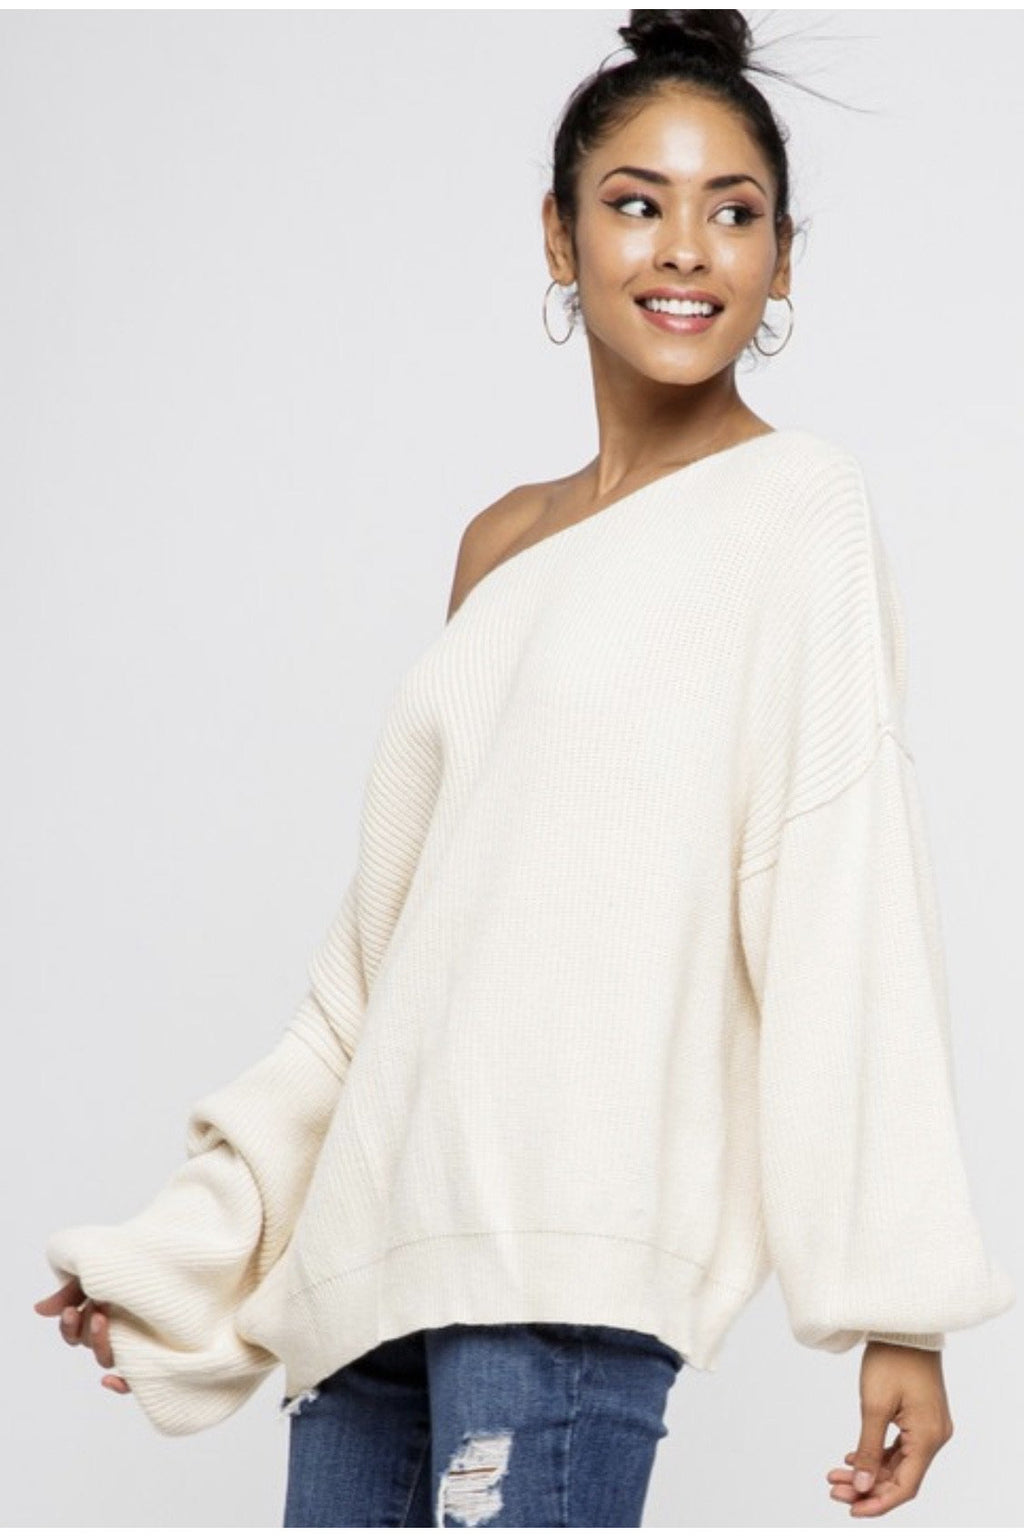 Celeste Bubble Sleeve Sweater $48